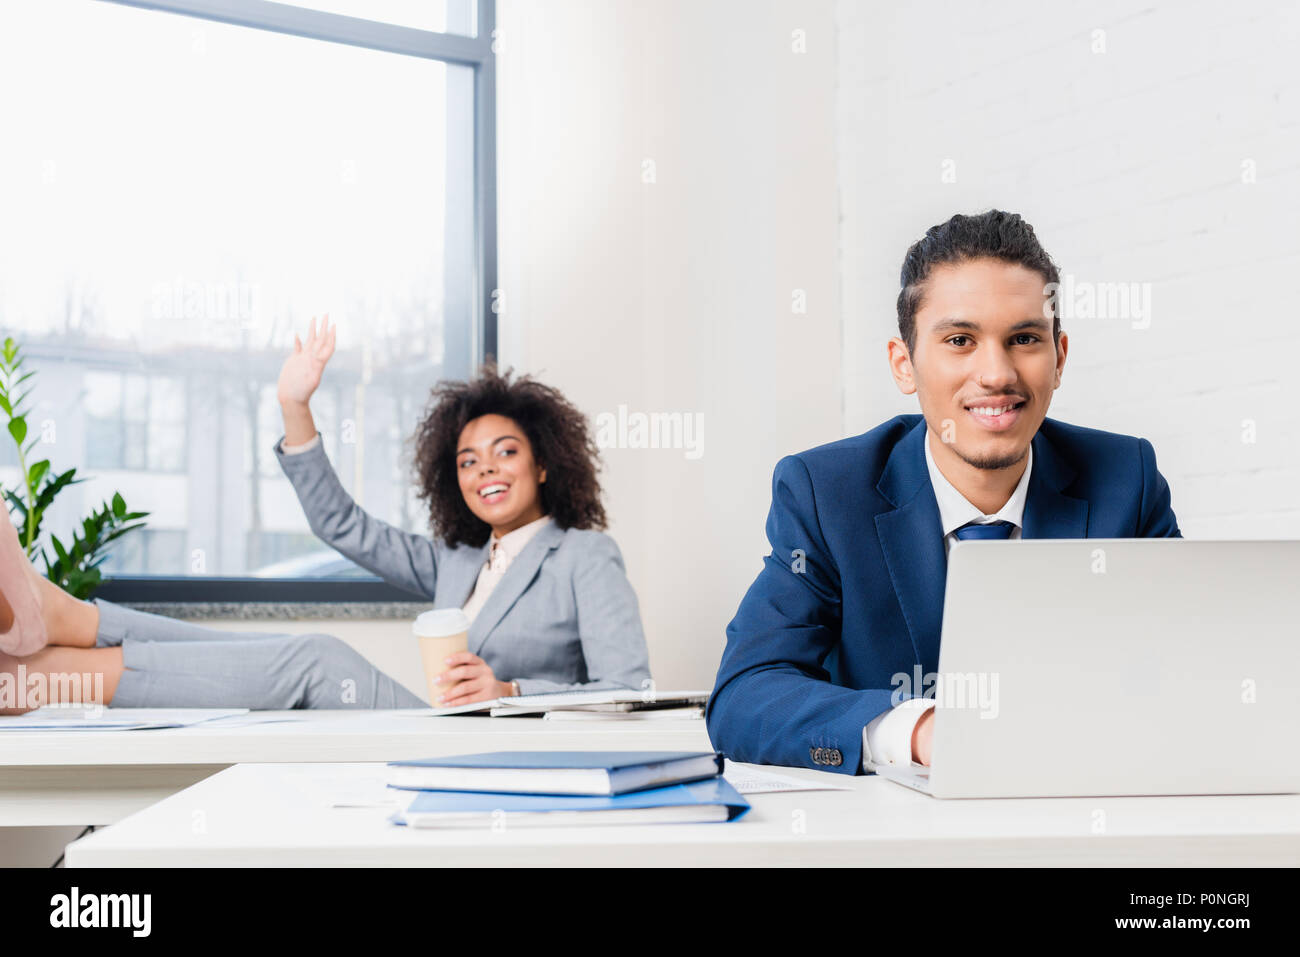 Businesswoman with paper cup greeting someone by businessman working on laptop in office - Stock Image